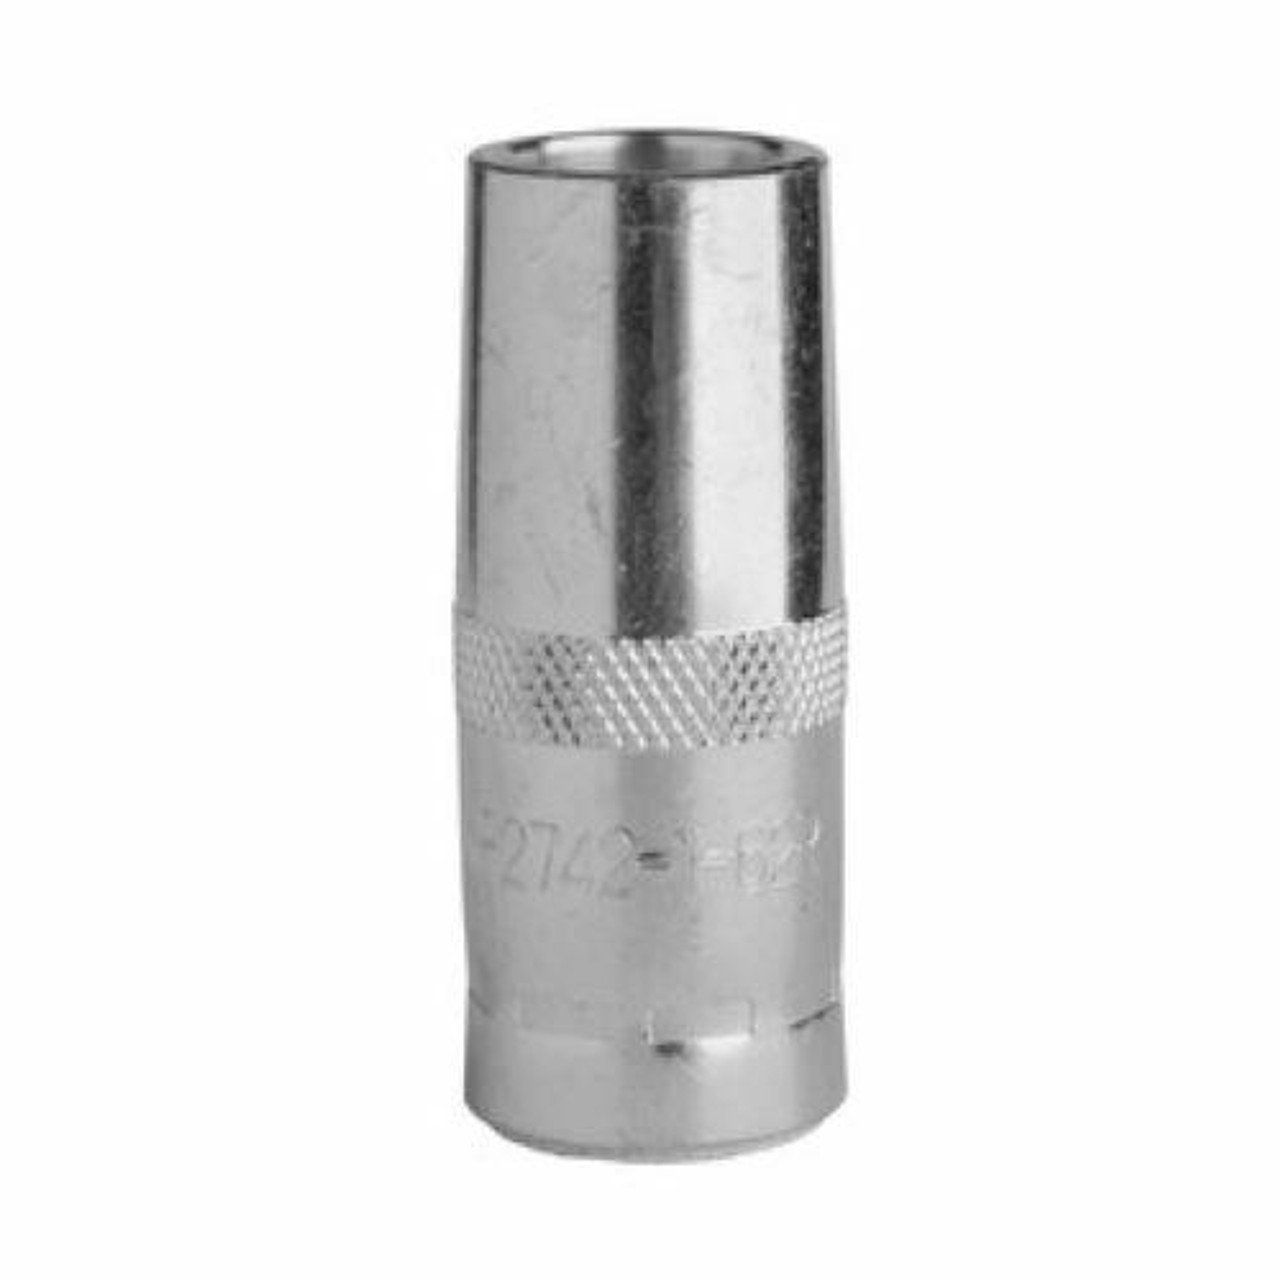 Lincoln 350A Thread-on Nozzle Flush 1/8 in 3.2 mm Recess 1/2 Inner Diameter KP2742-1-50R